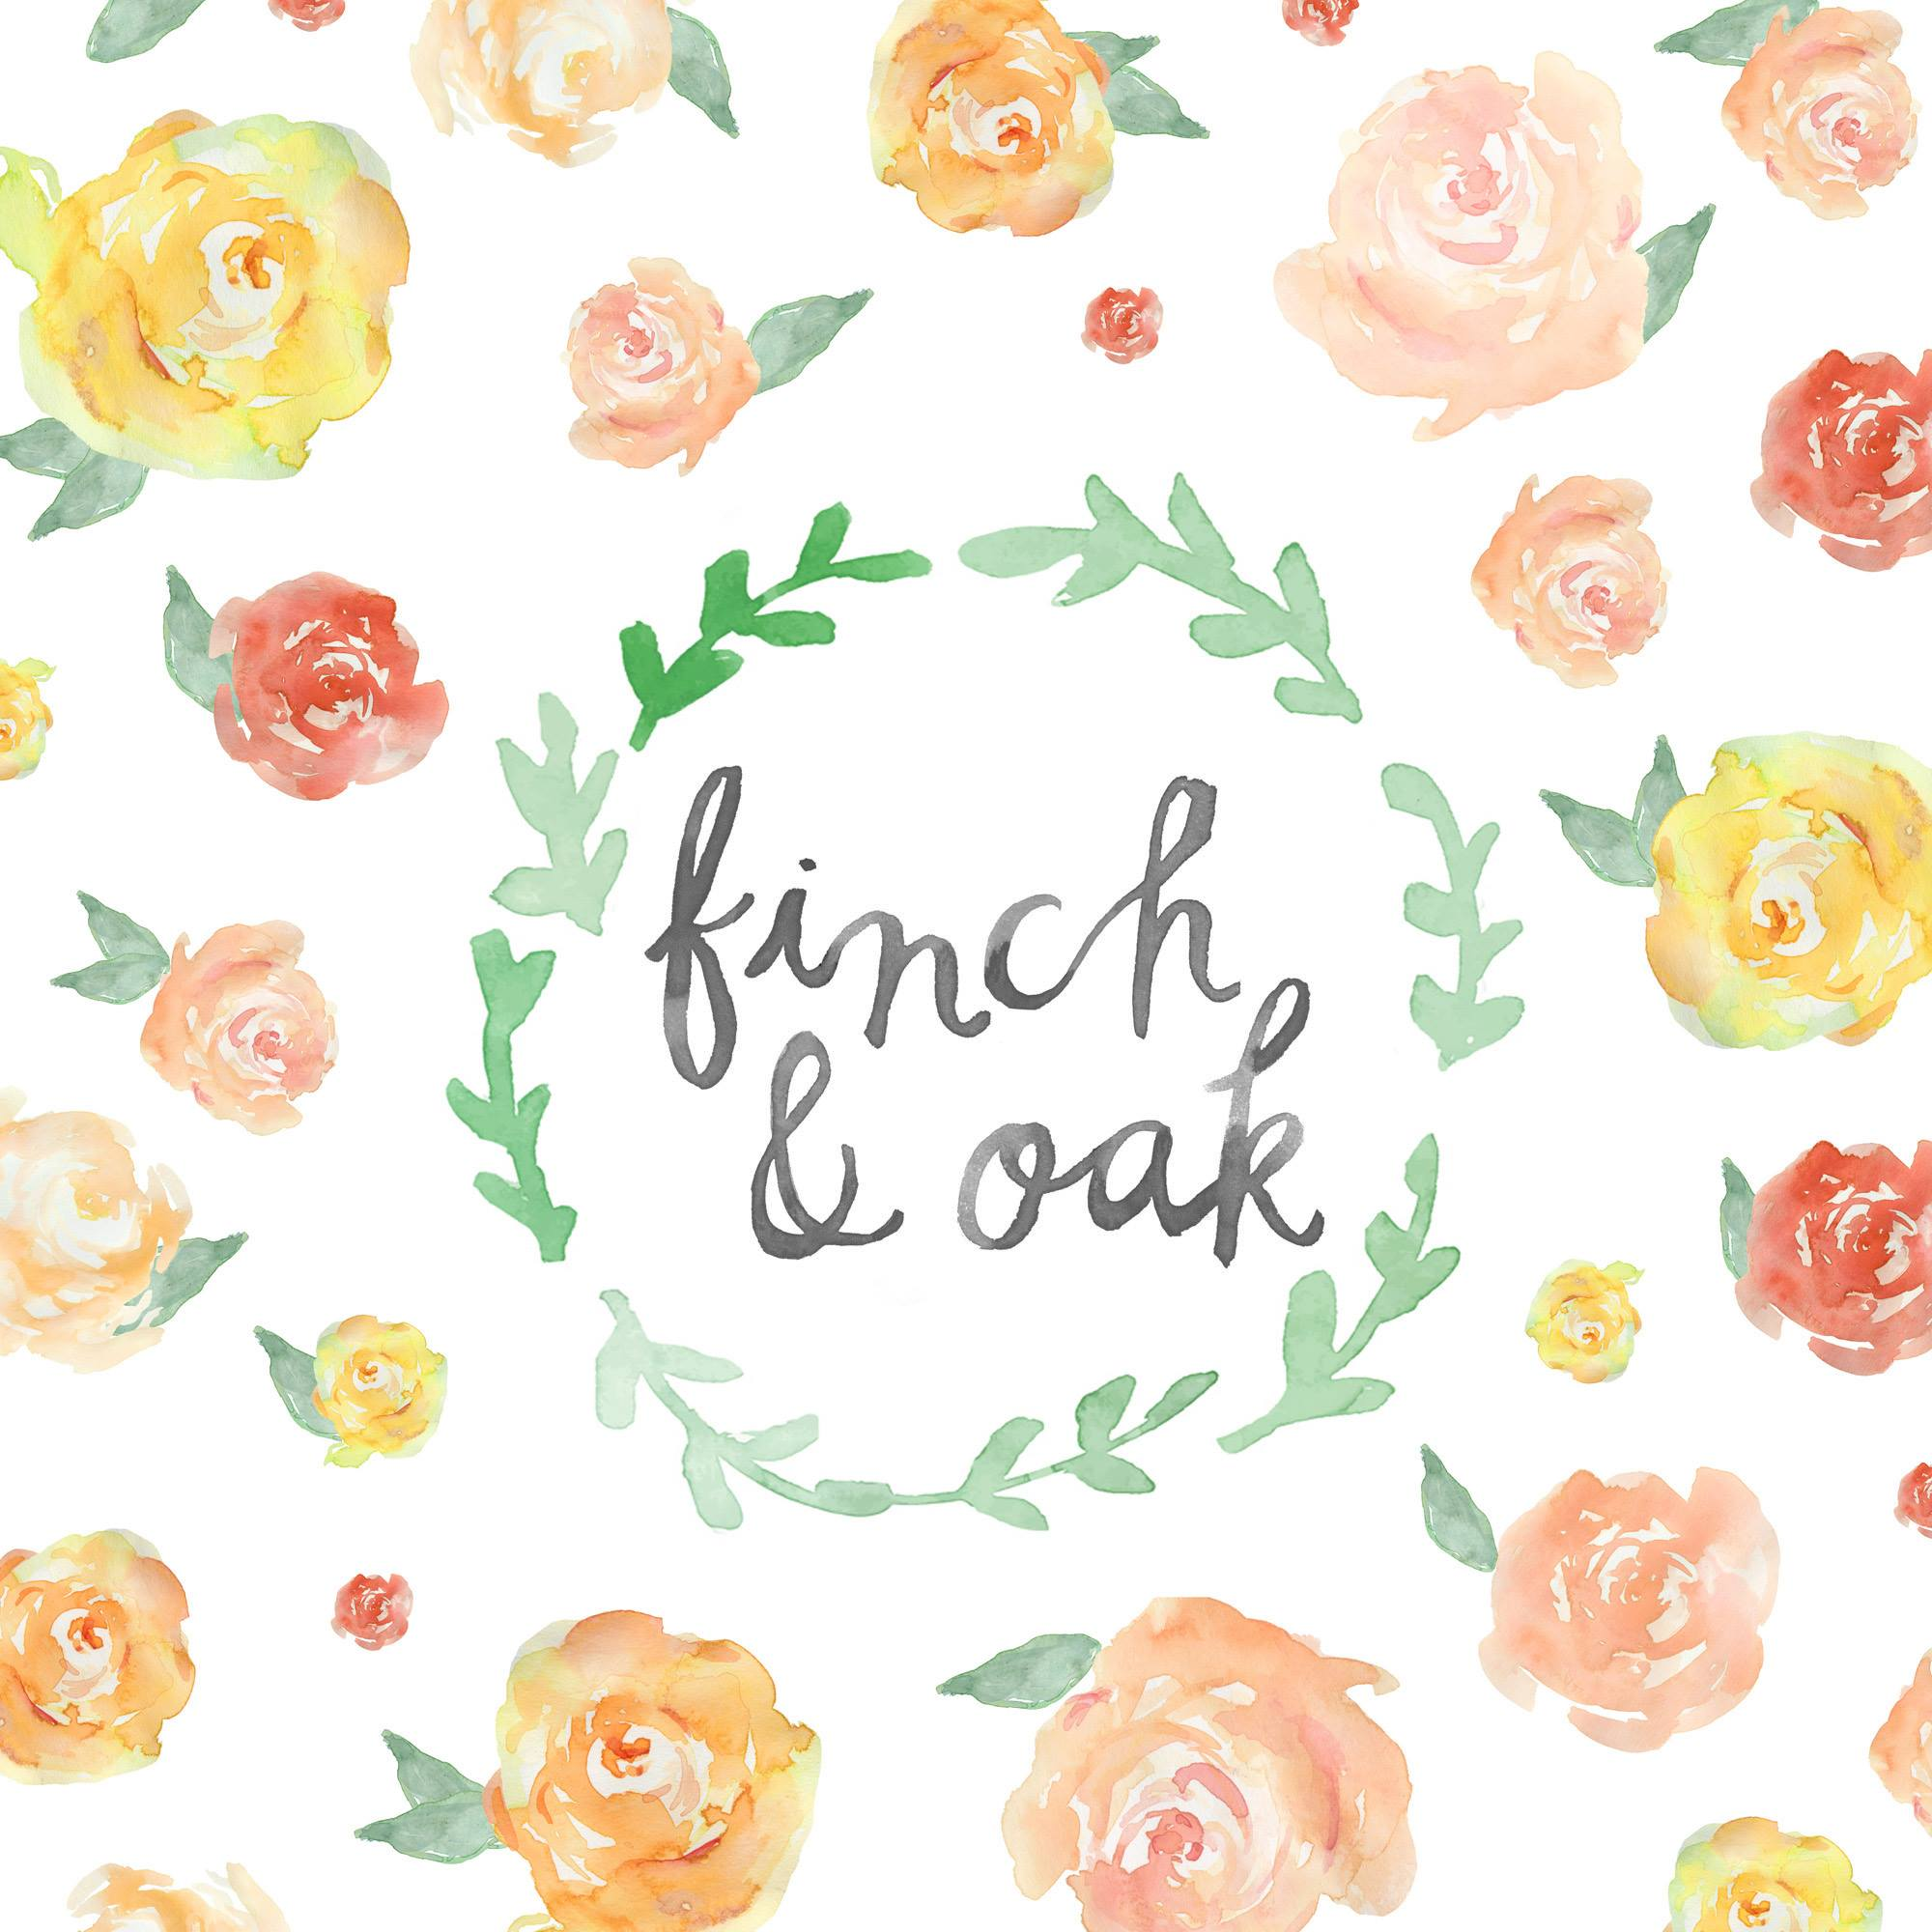 finch & oak wedding co.